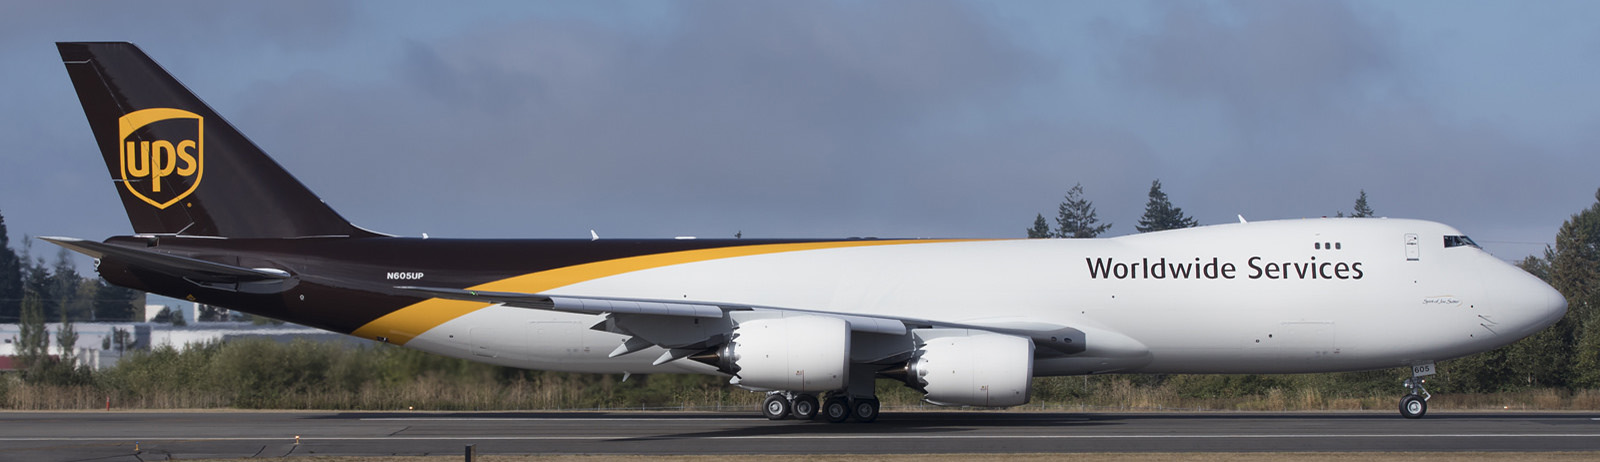 UPS Boeing 747-8F preparing for departure.